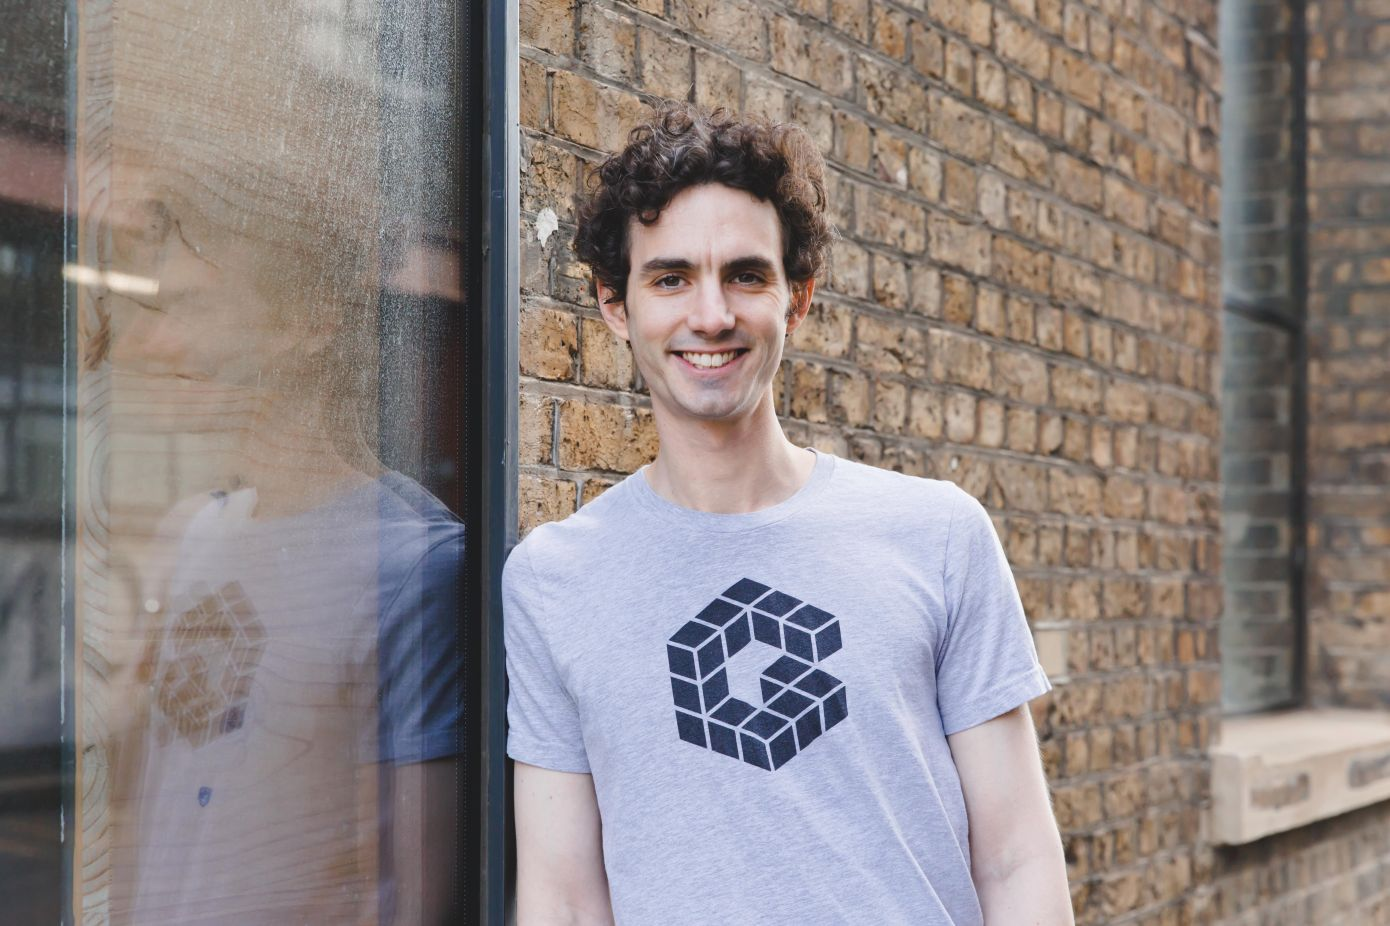 LabGenius: London-based startup gets €11.5M for discovering next-gen drugs using AI